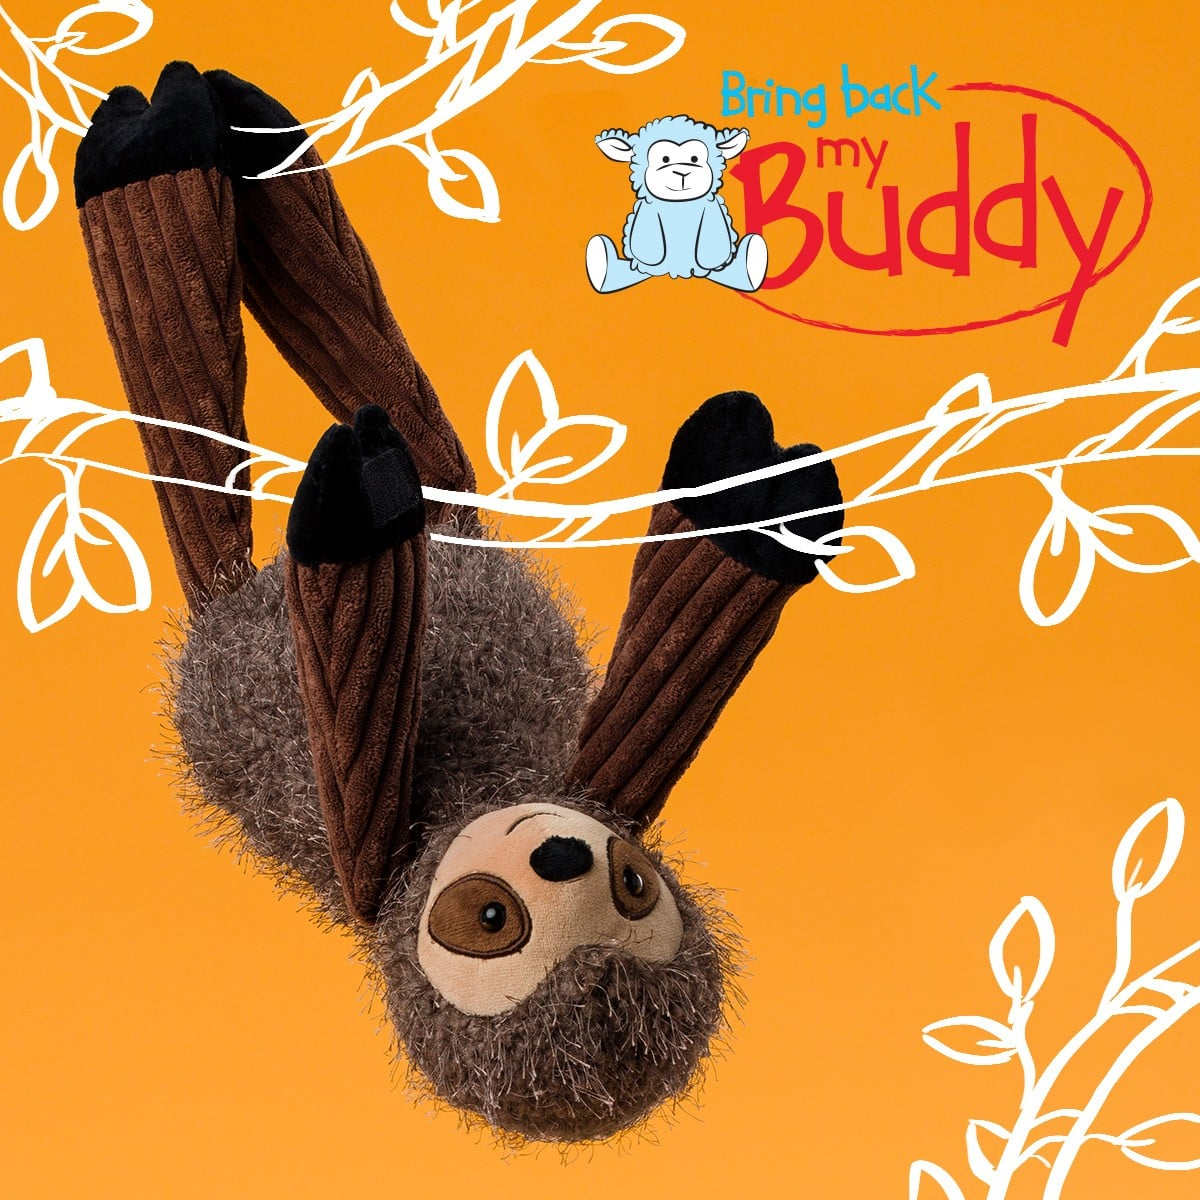 SUZIE THE SLOTH SCENTSY BUDDY BRING BACK MY BUDDY